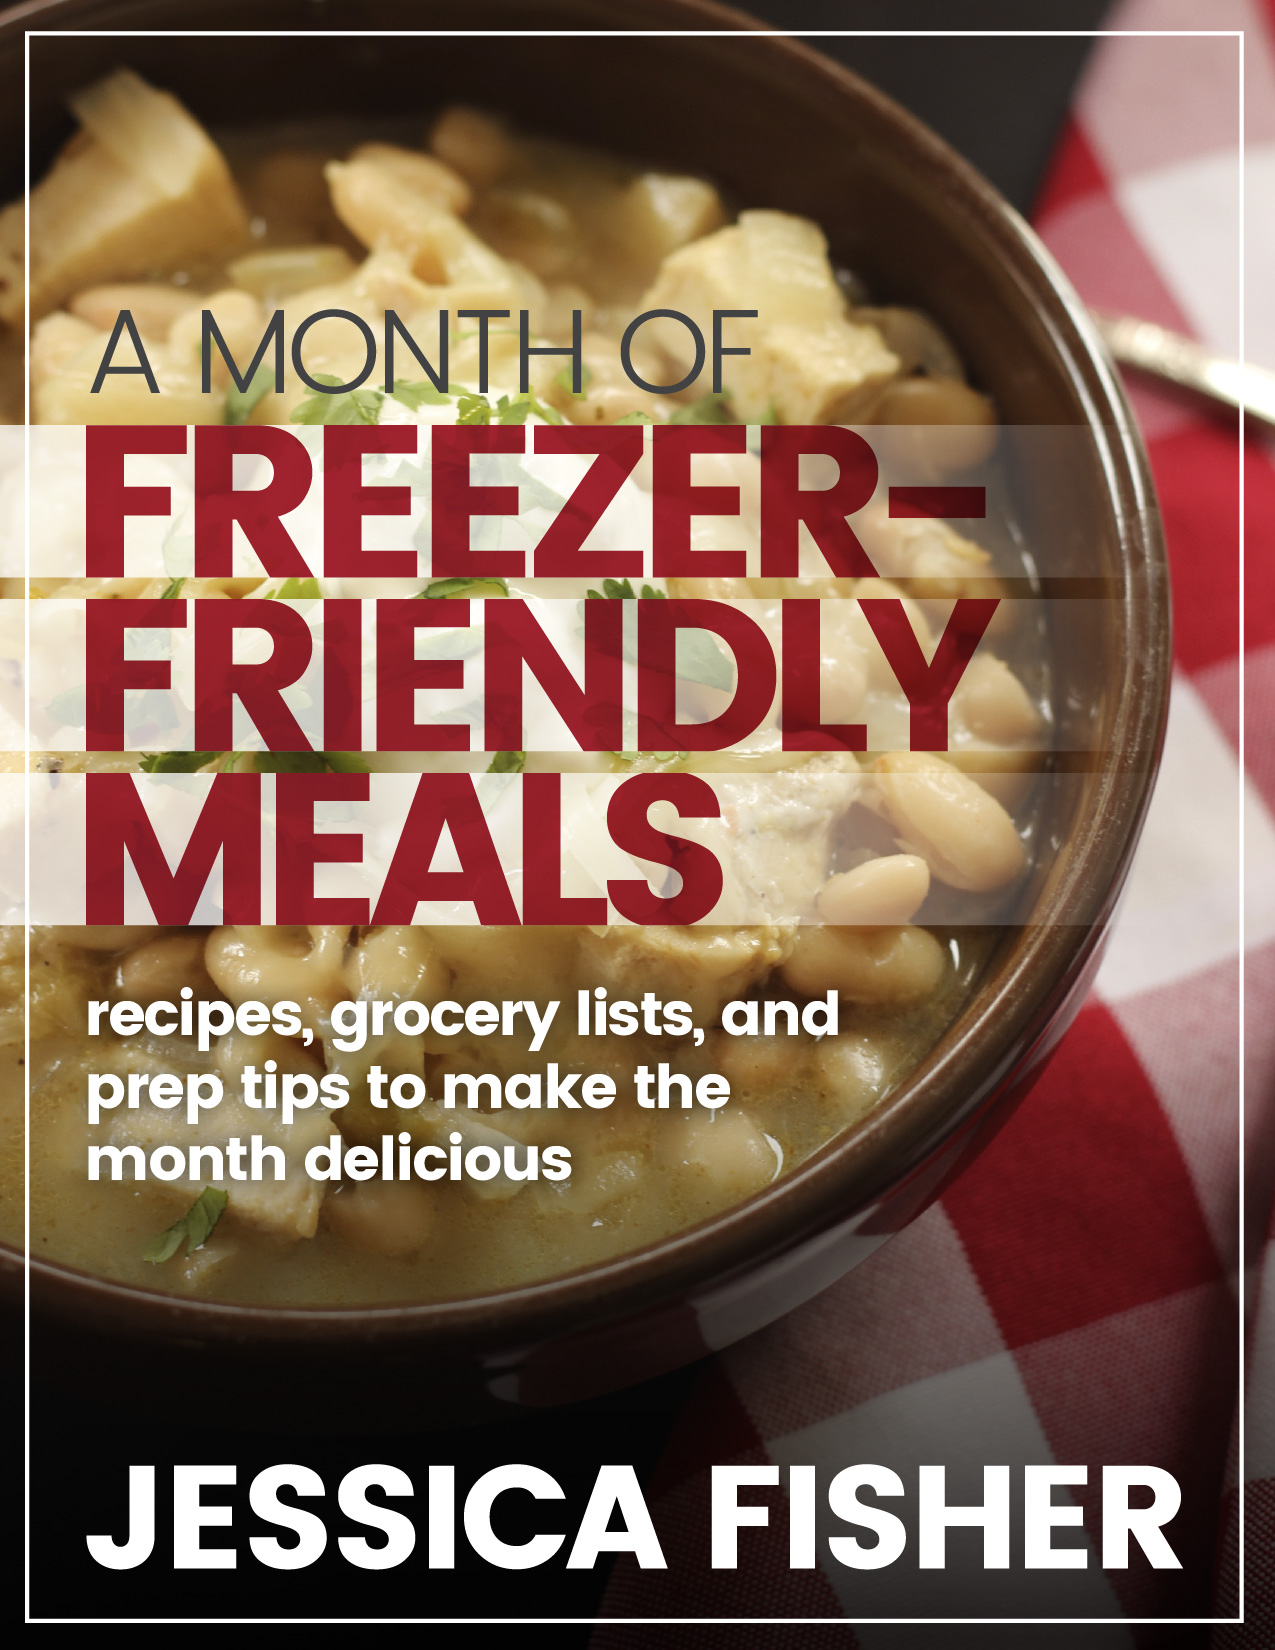 A Month of Freezer-Friendly Meal Plans by Jessica Fisher